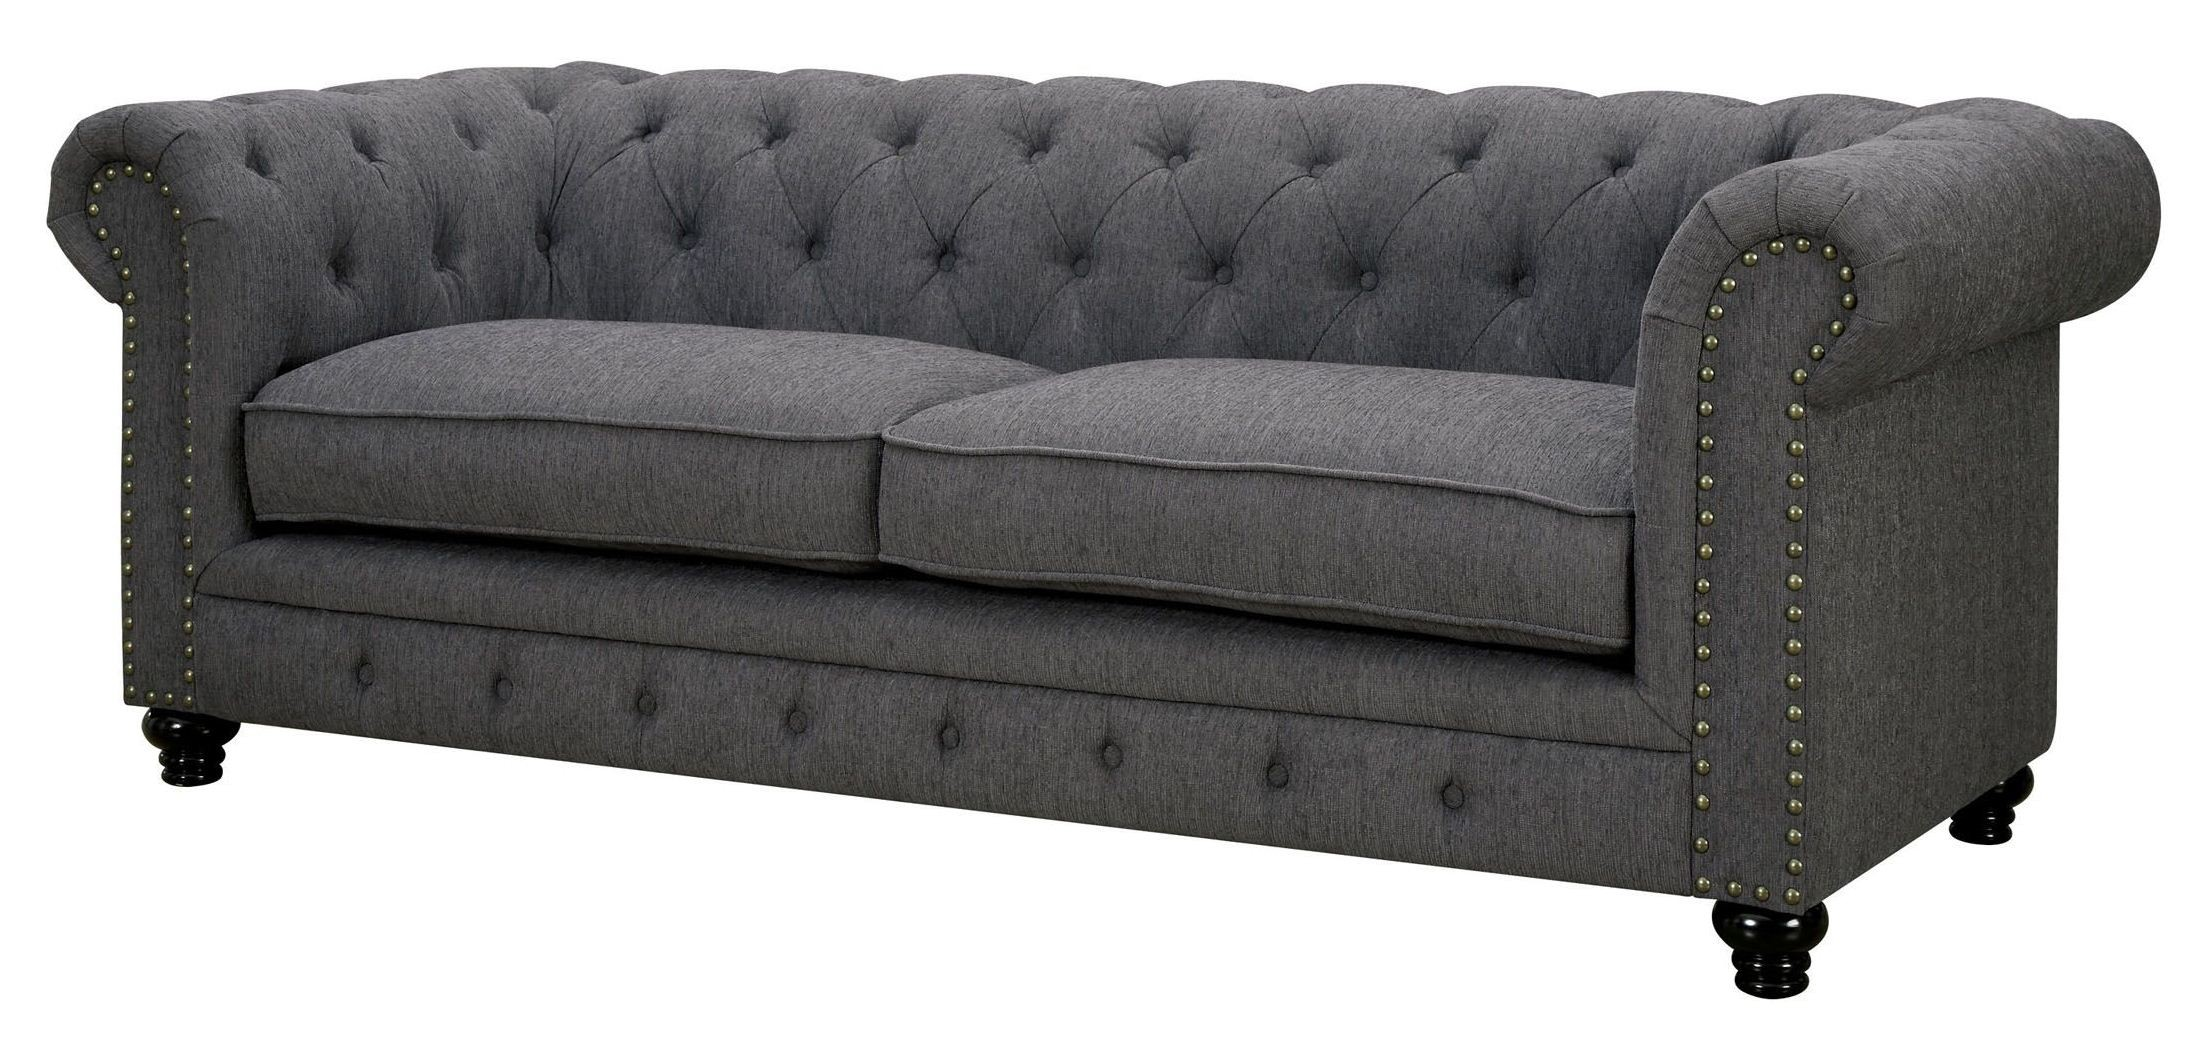 stanford gray fabric sofa from furniture of america cm6269gy sf